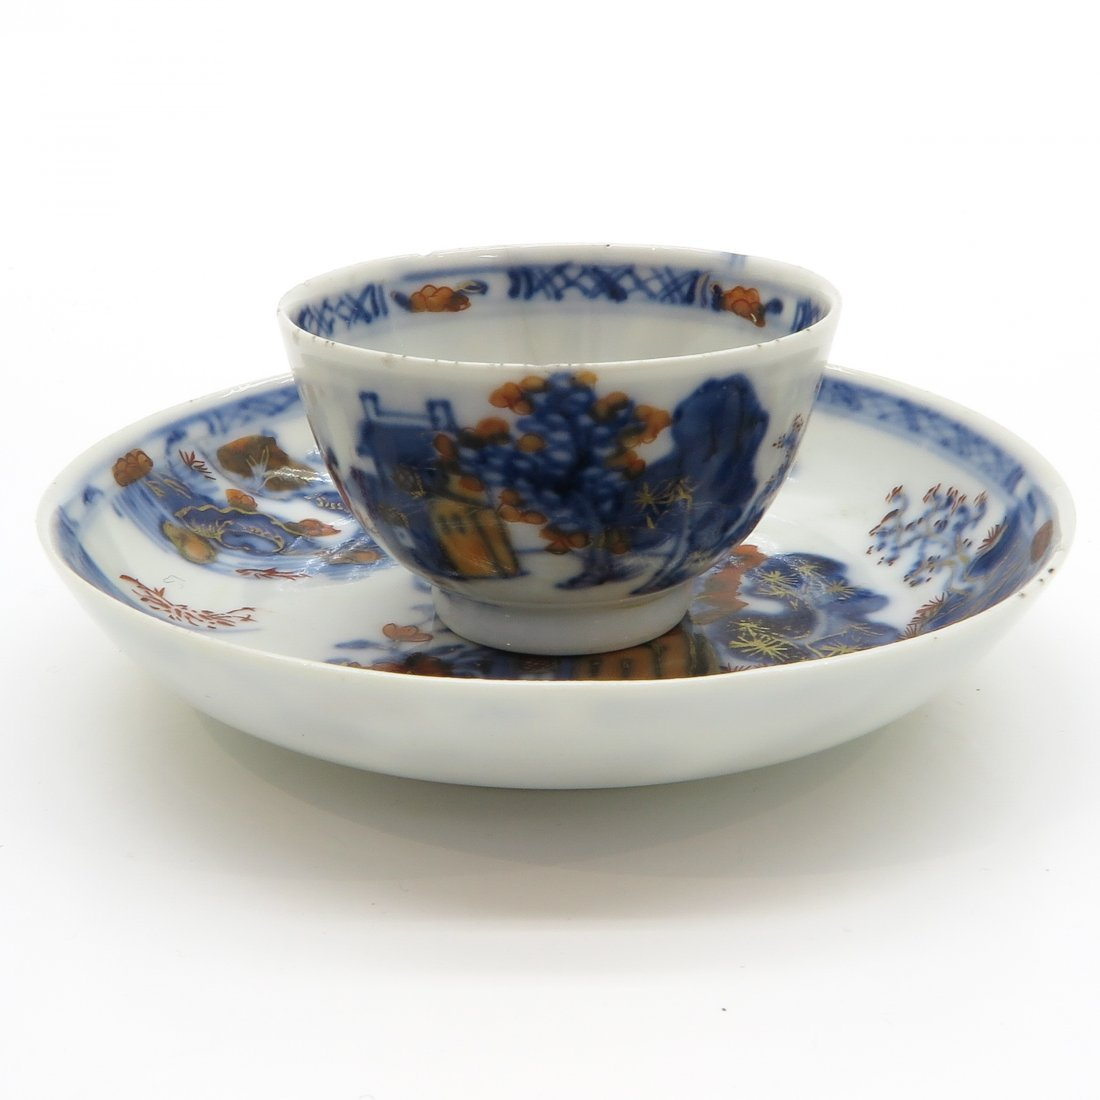 18th Century China Porcelain Cup and Saucer